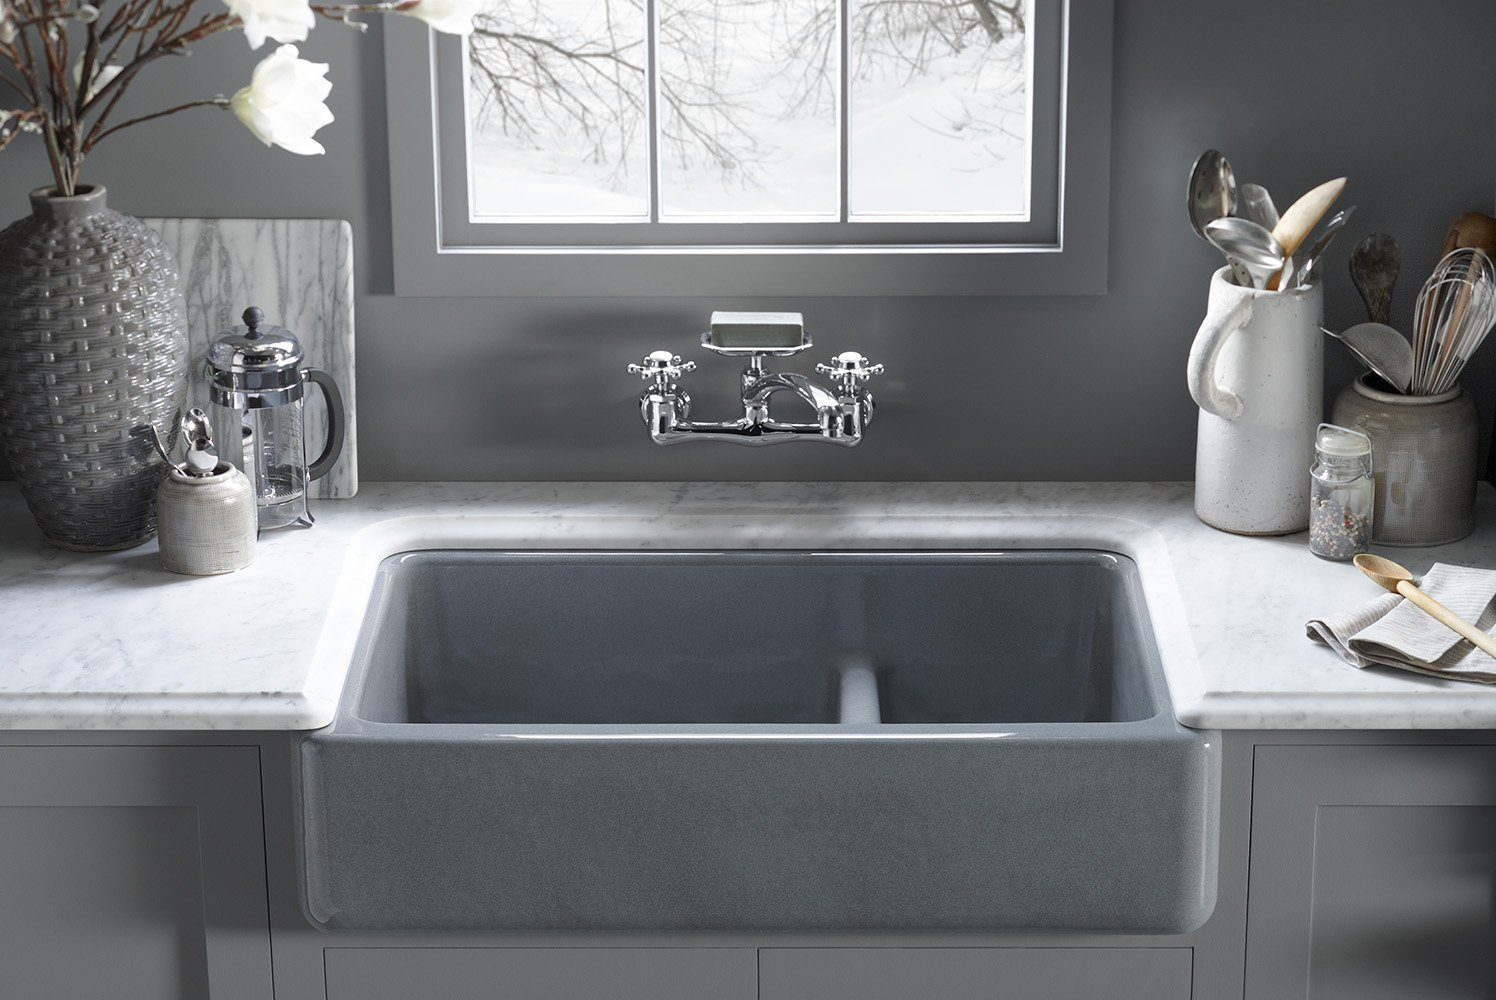 Kohler whitehaven apron sink